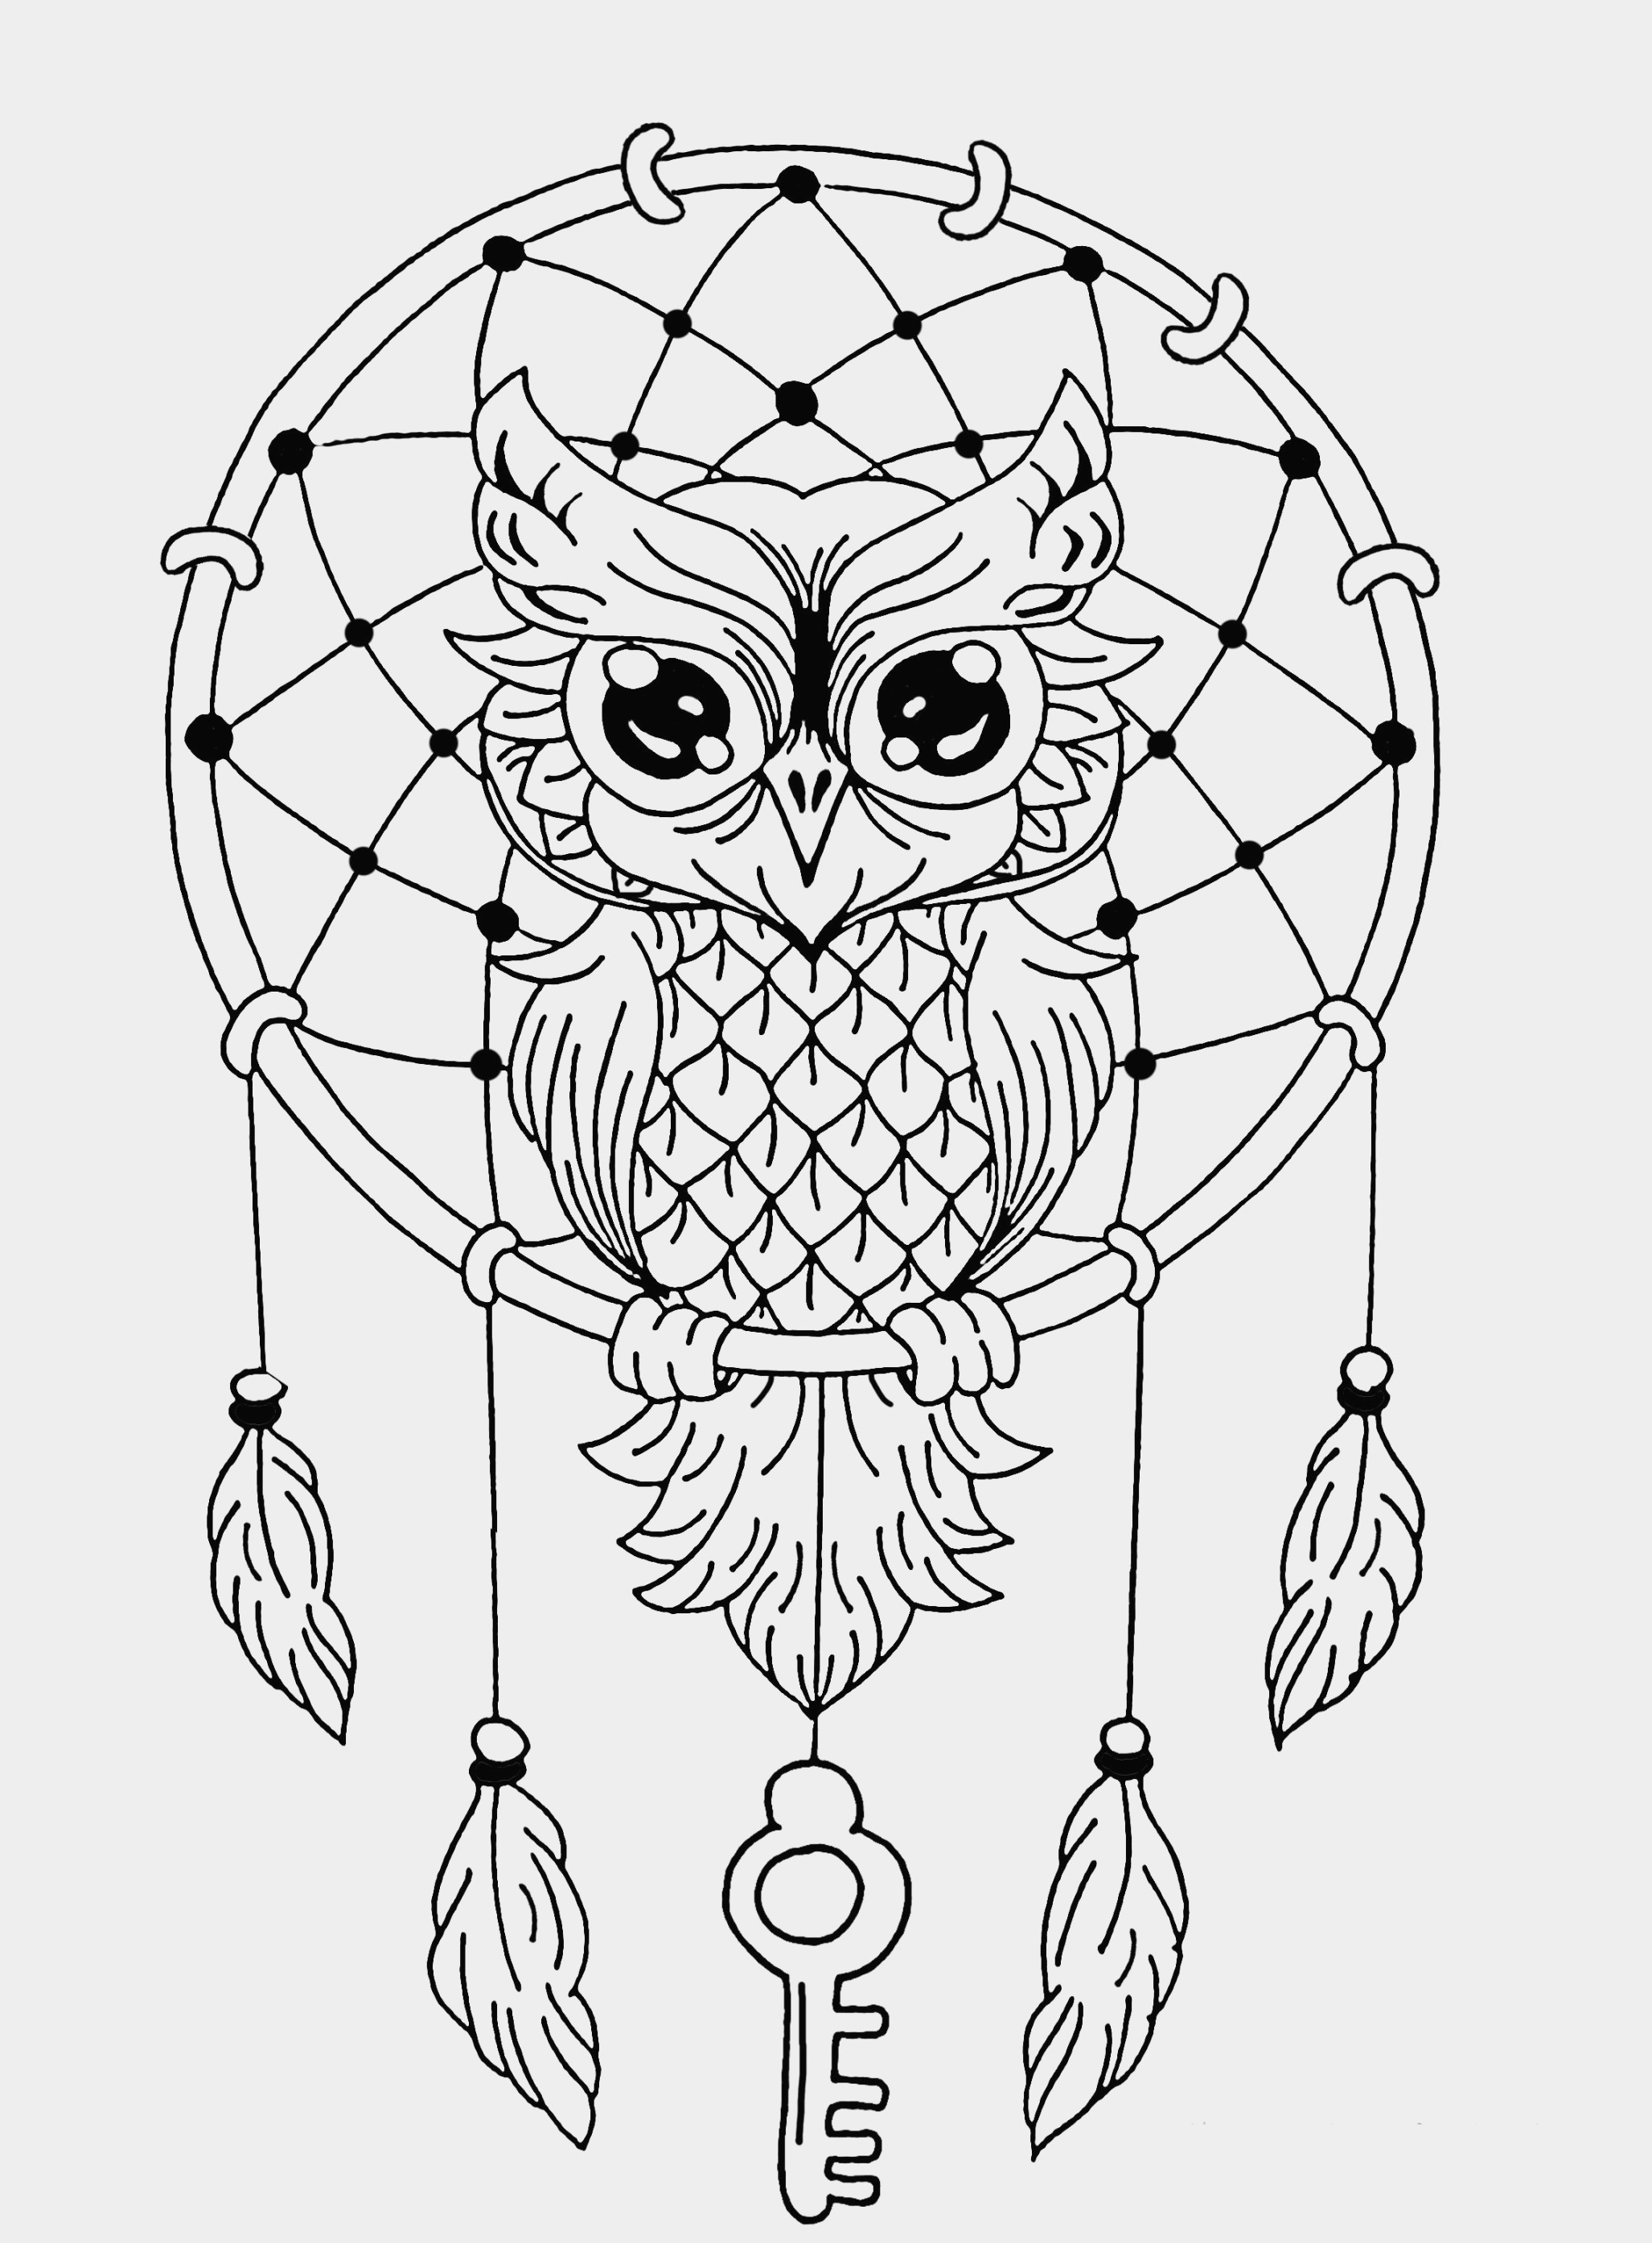 mandela pictures to color celtic mandala coloring page free printable coloring pages to color mandela pictures